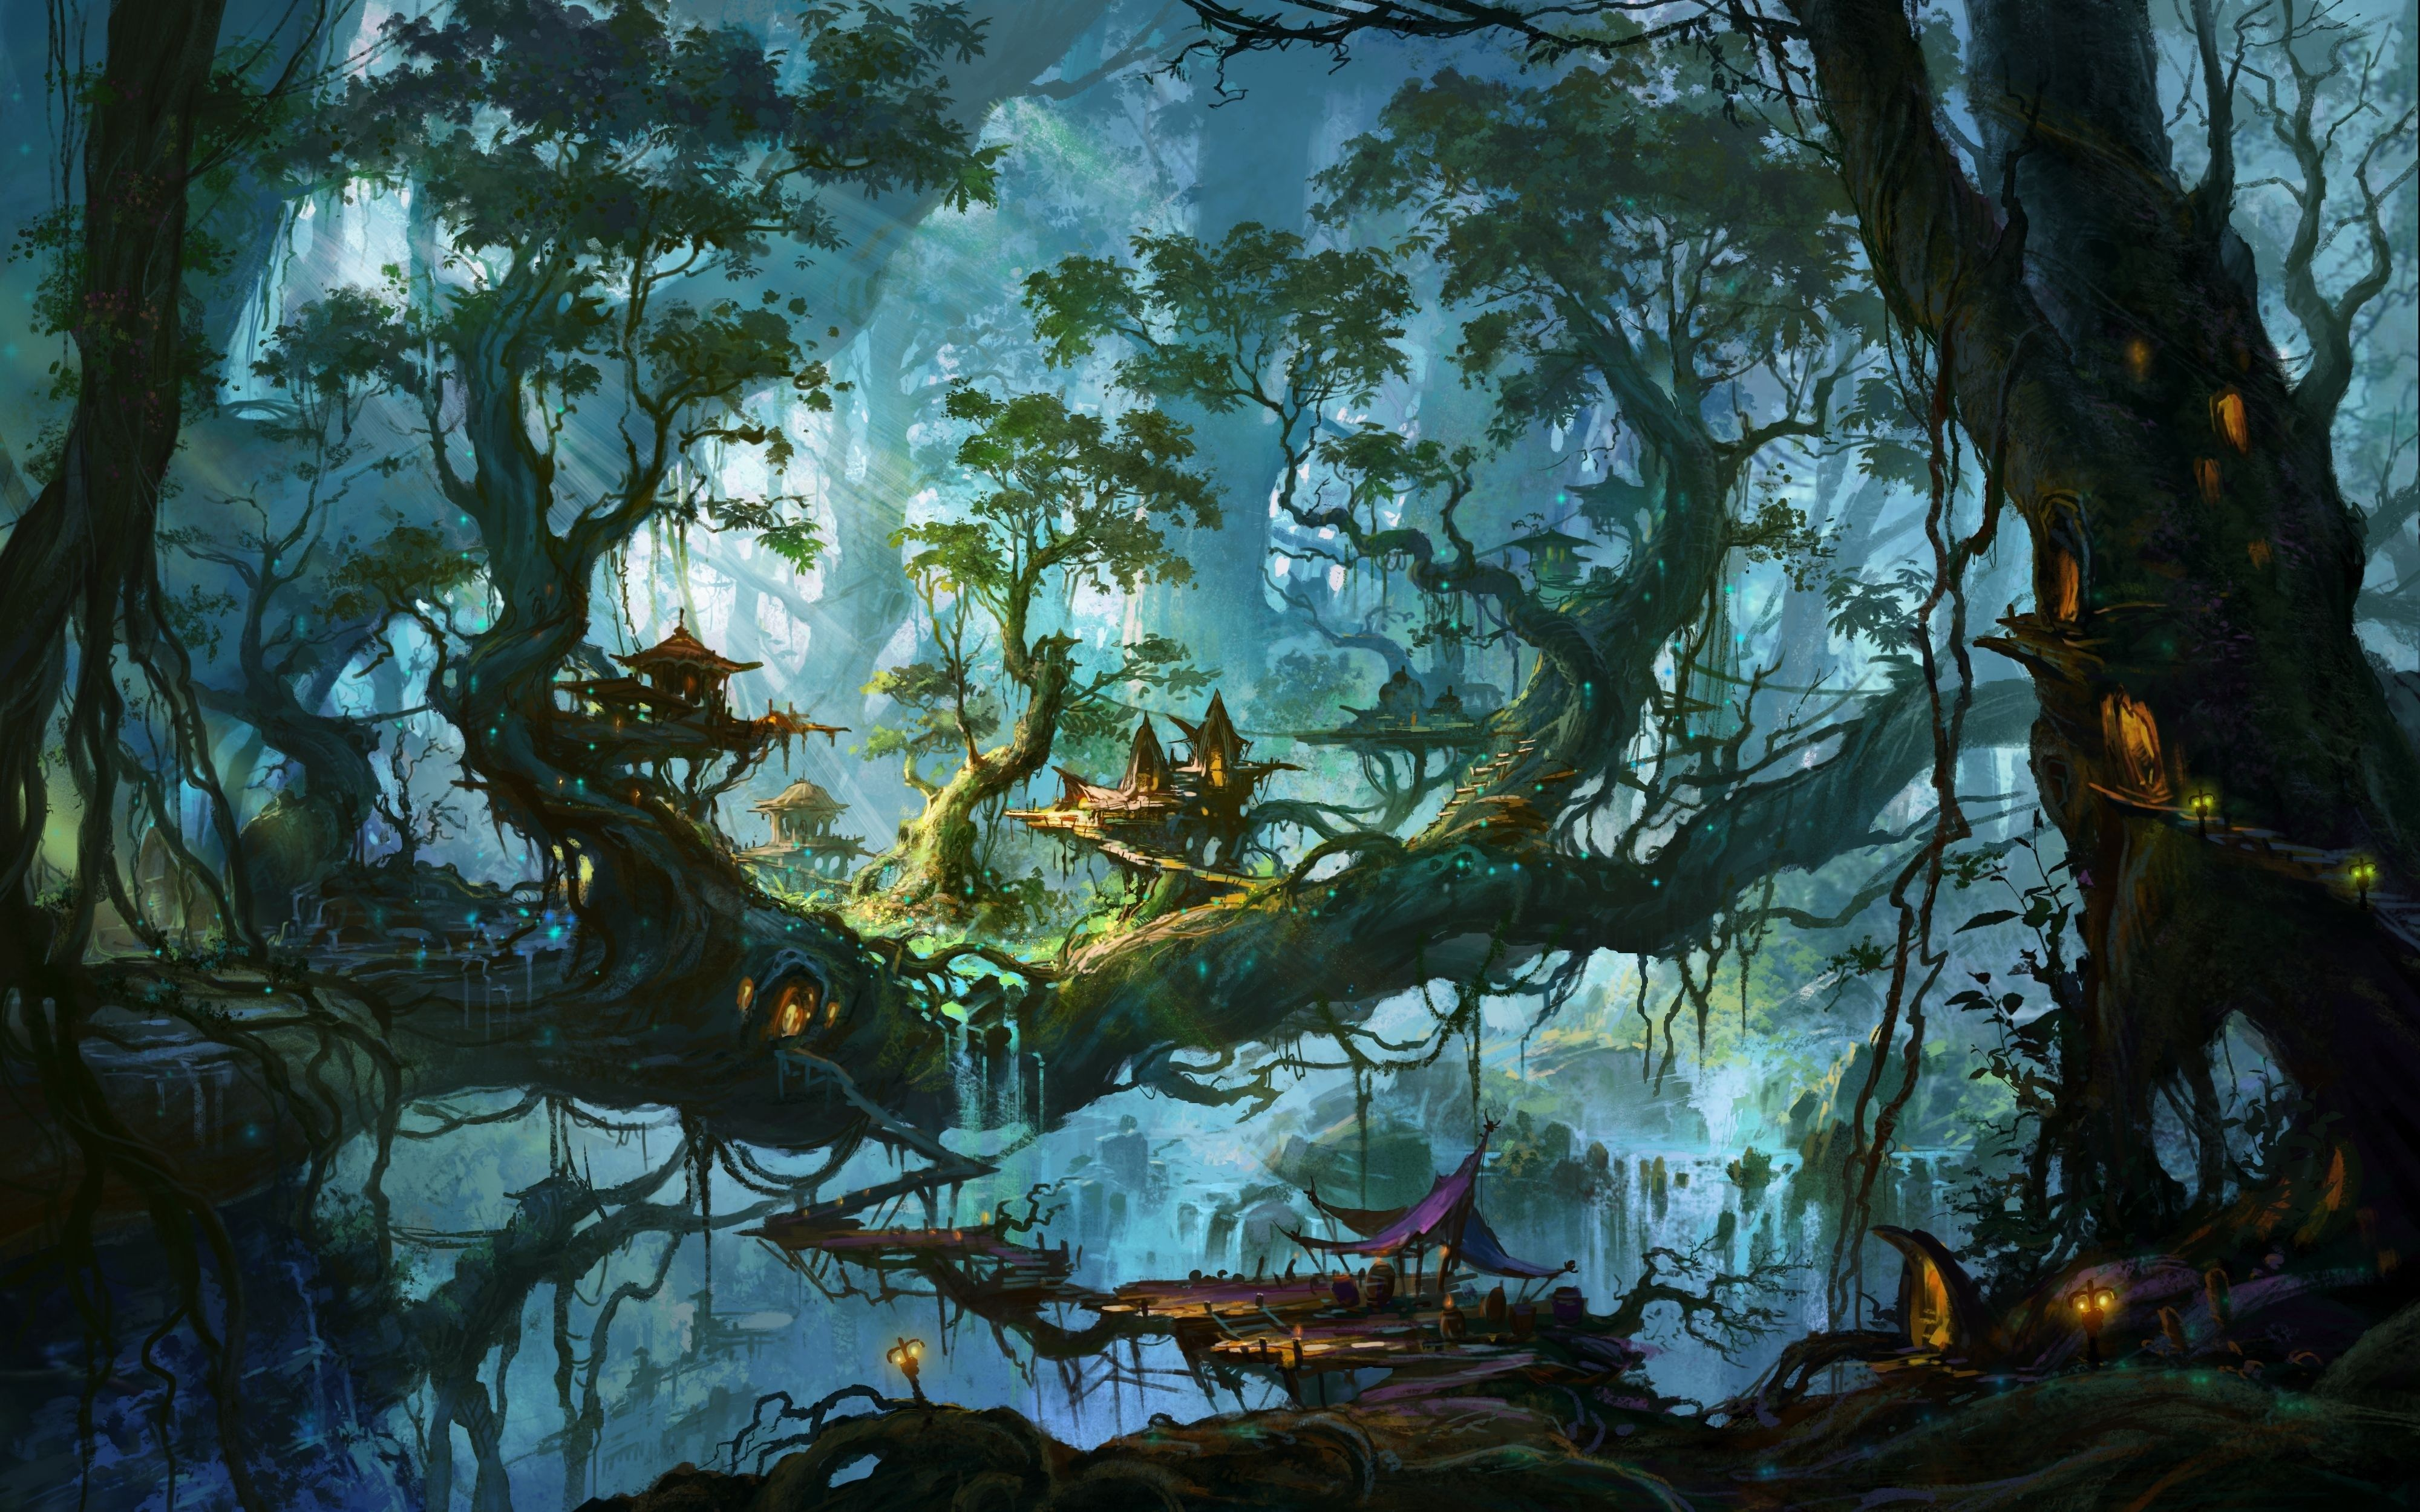 wallpapers trees, lights, kingdom, fantasy art, elves, artworkwallpapers trees, lights, kingdom, fantasy art, elves, artwork